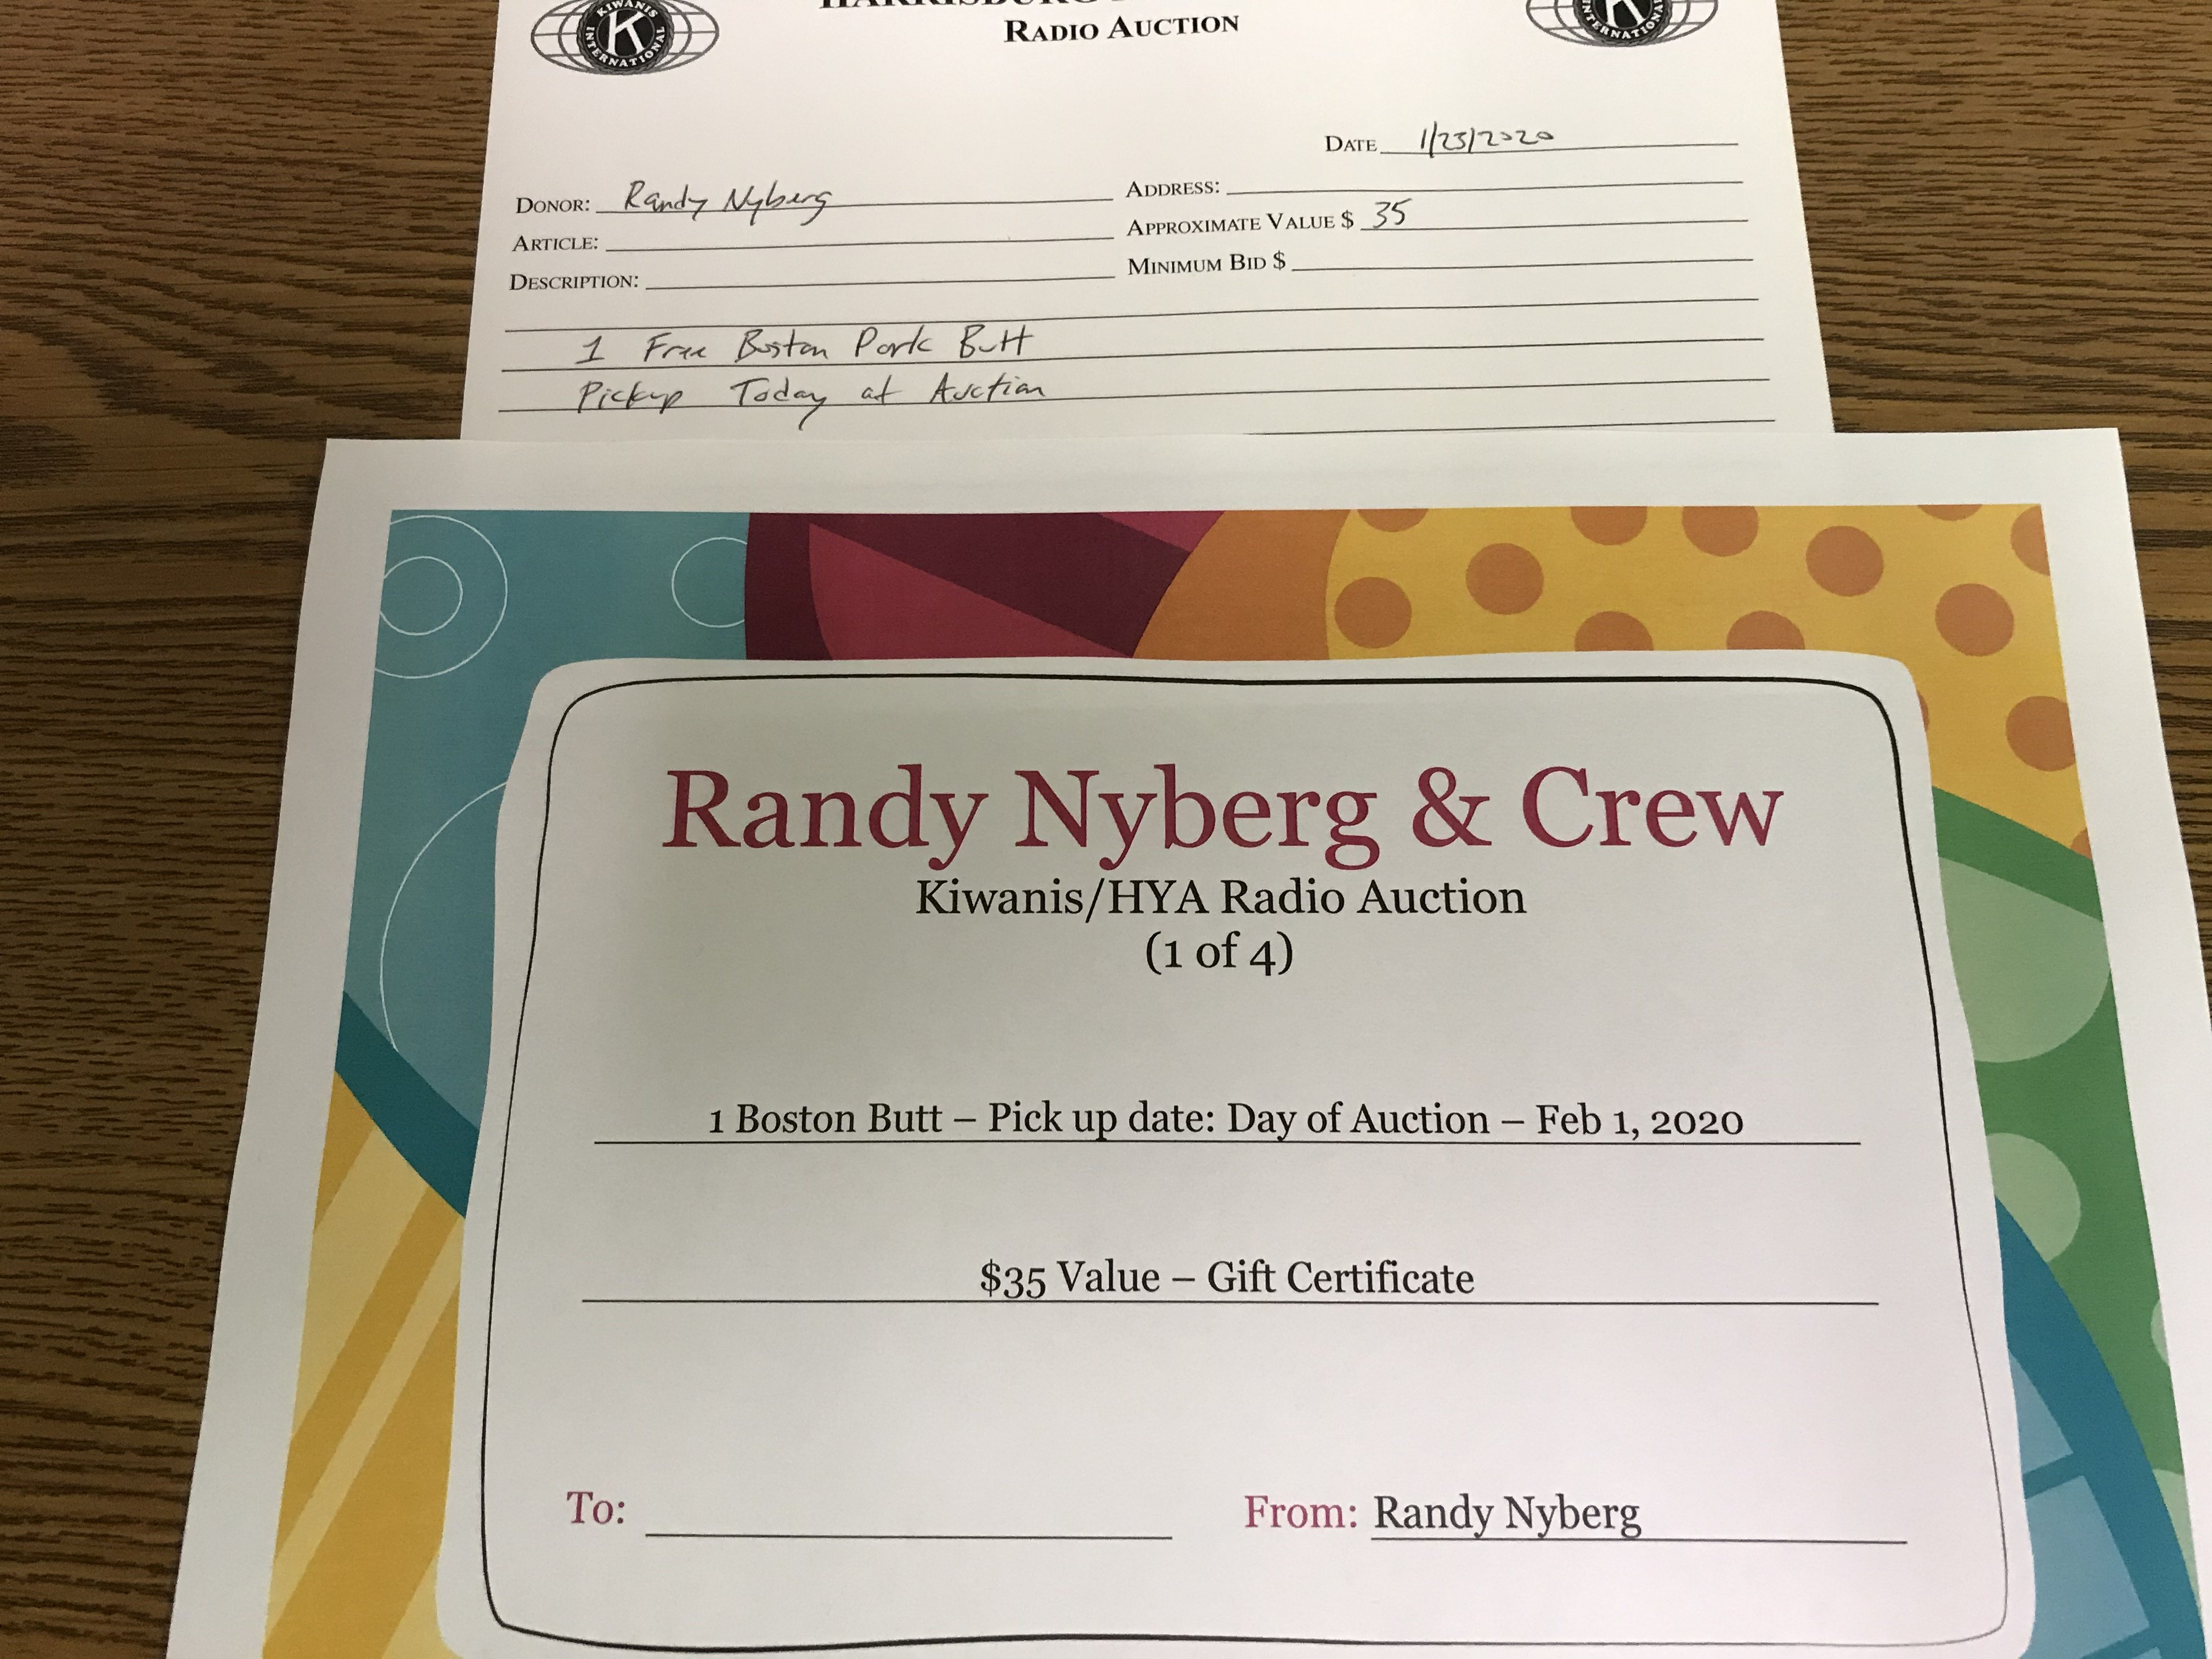 Item 105 - Randy Nyberg 1 Free Pork Butt (available for pickup the day of the Auction)